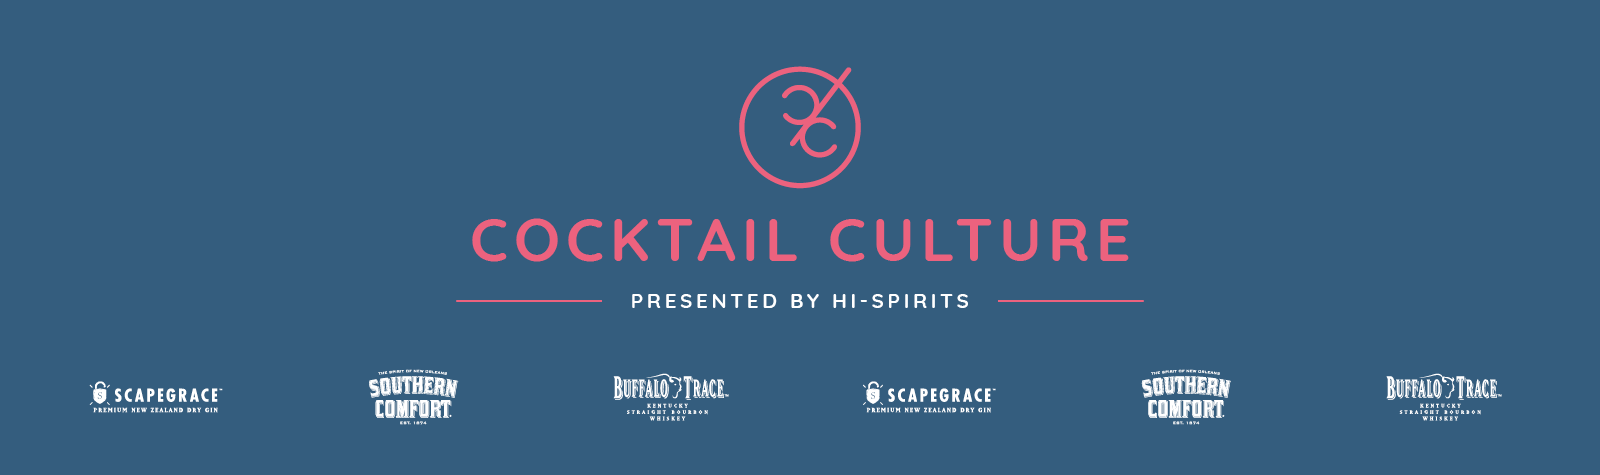 Cocktail Culture in the spotlight as Hi-Spirits celebrates London Cocktail Week